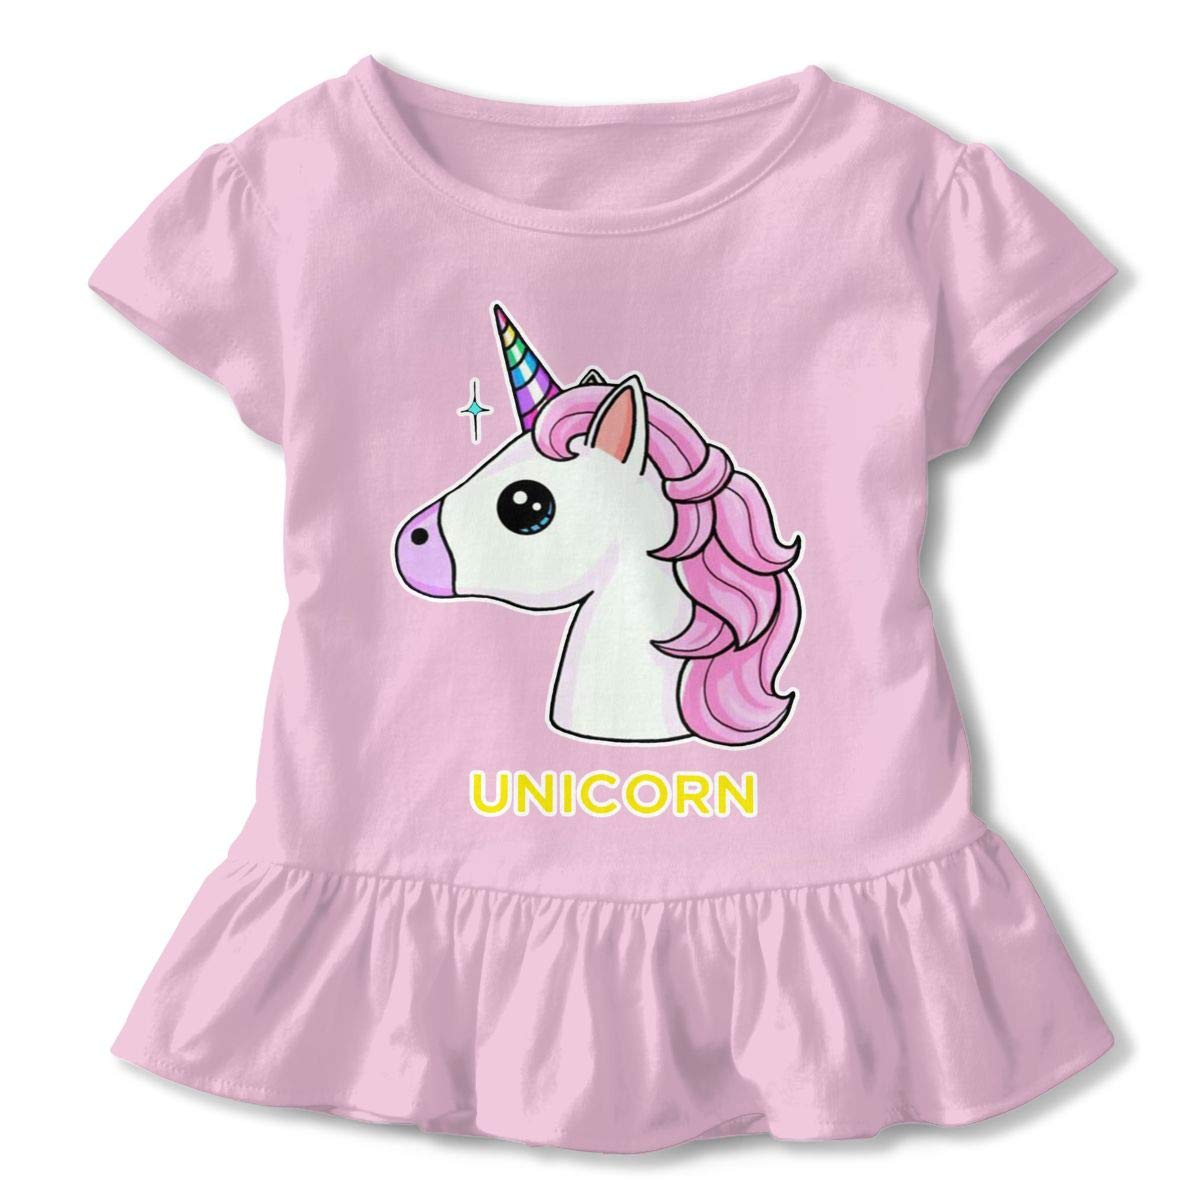 Pink Unicorn Toddler Ruffle T-Shirt Cotton Tees for 2-6T